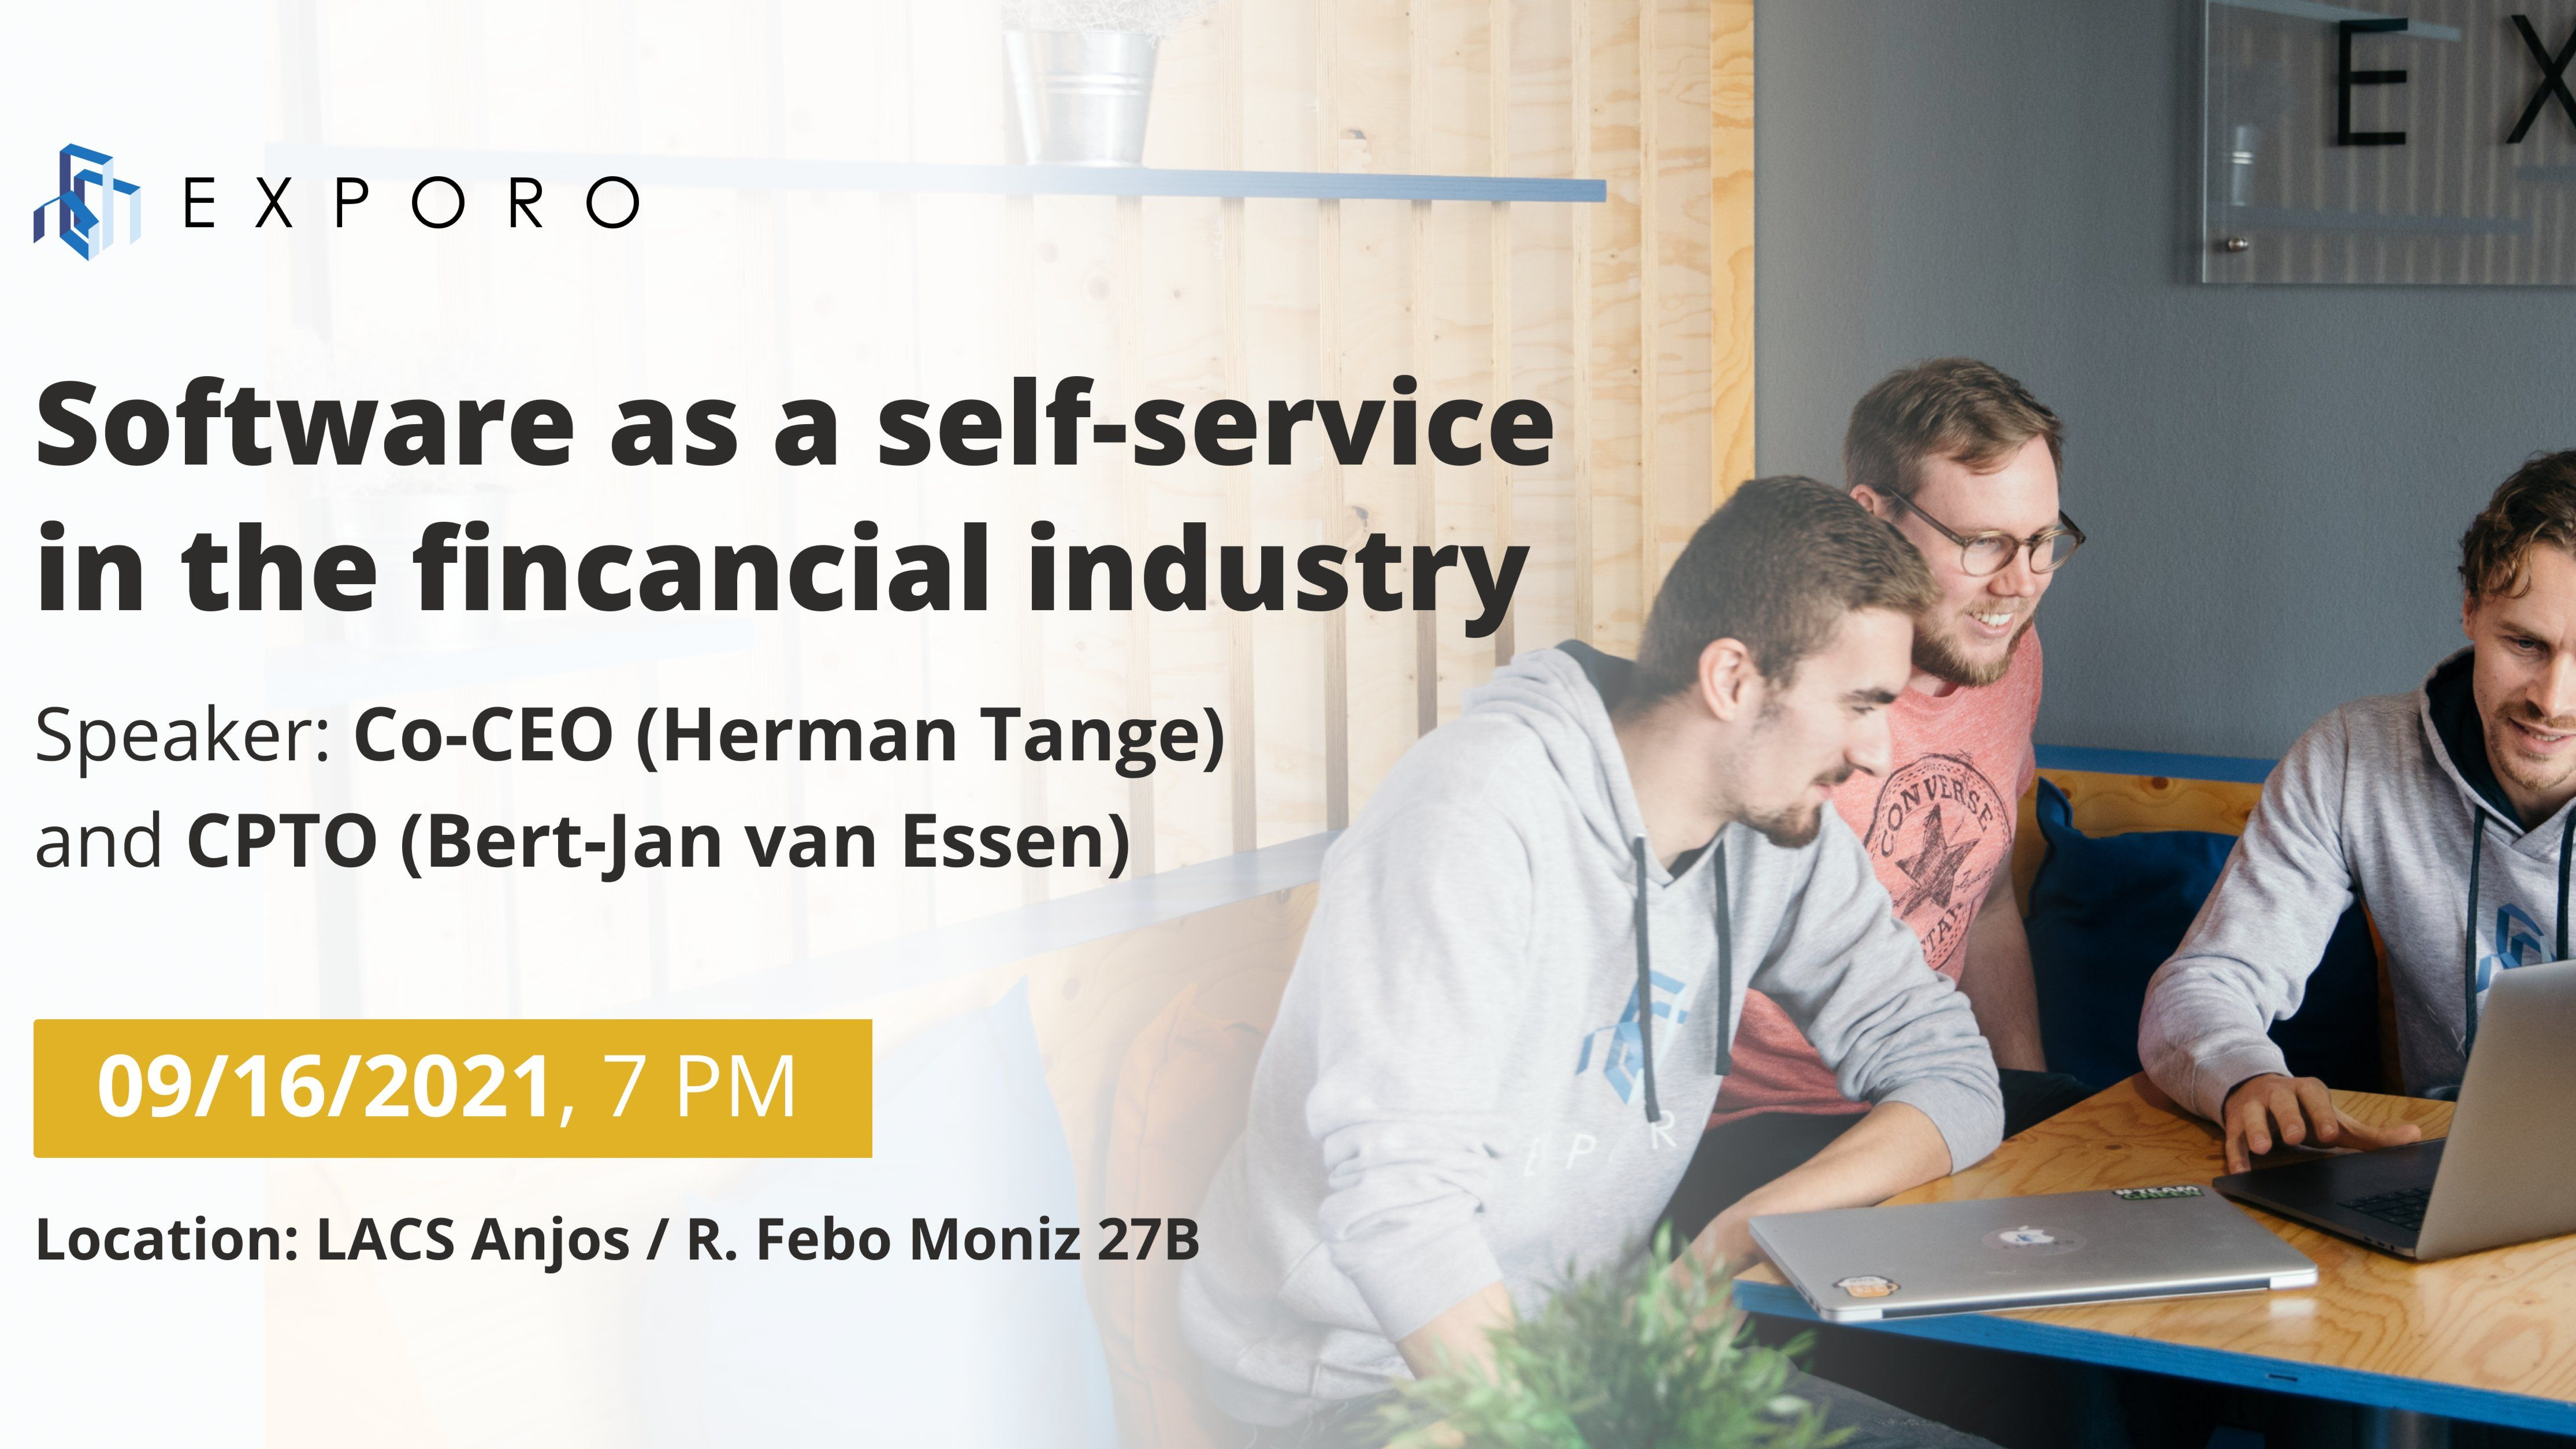 Software as a self-service in the financial industry